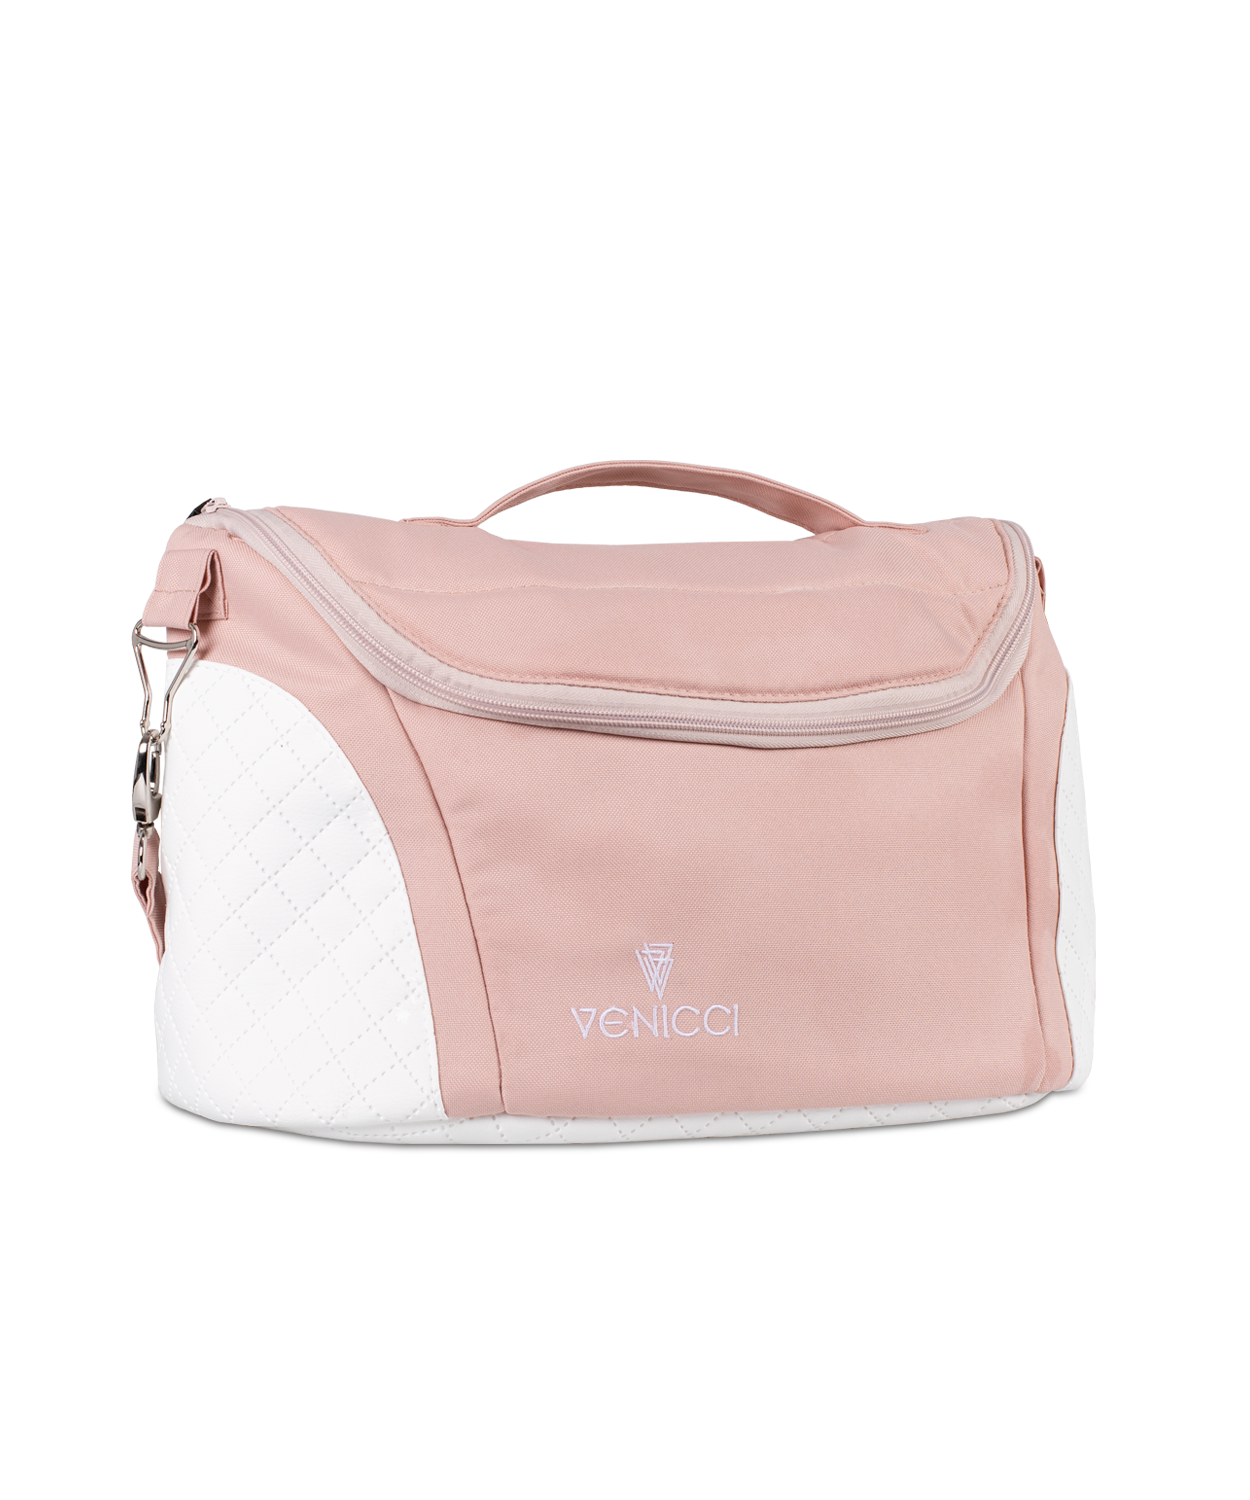 Venicci Pure Rose Changing bag